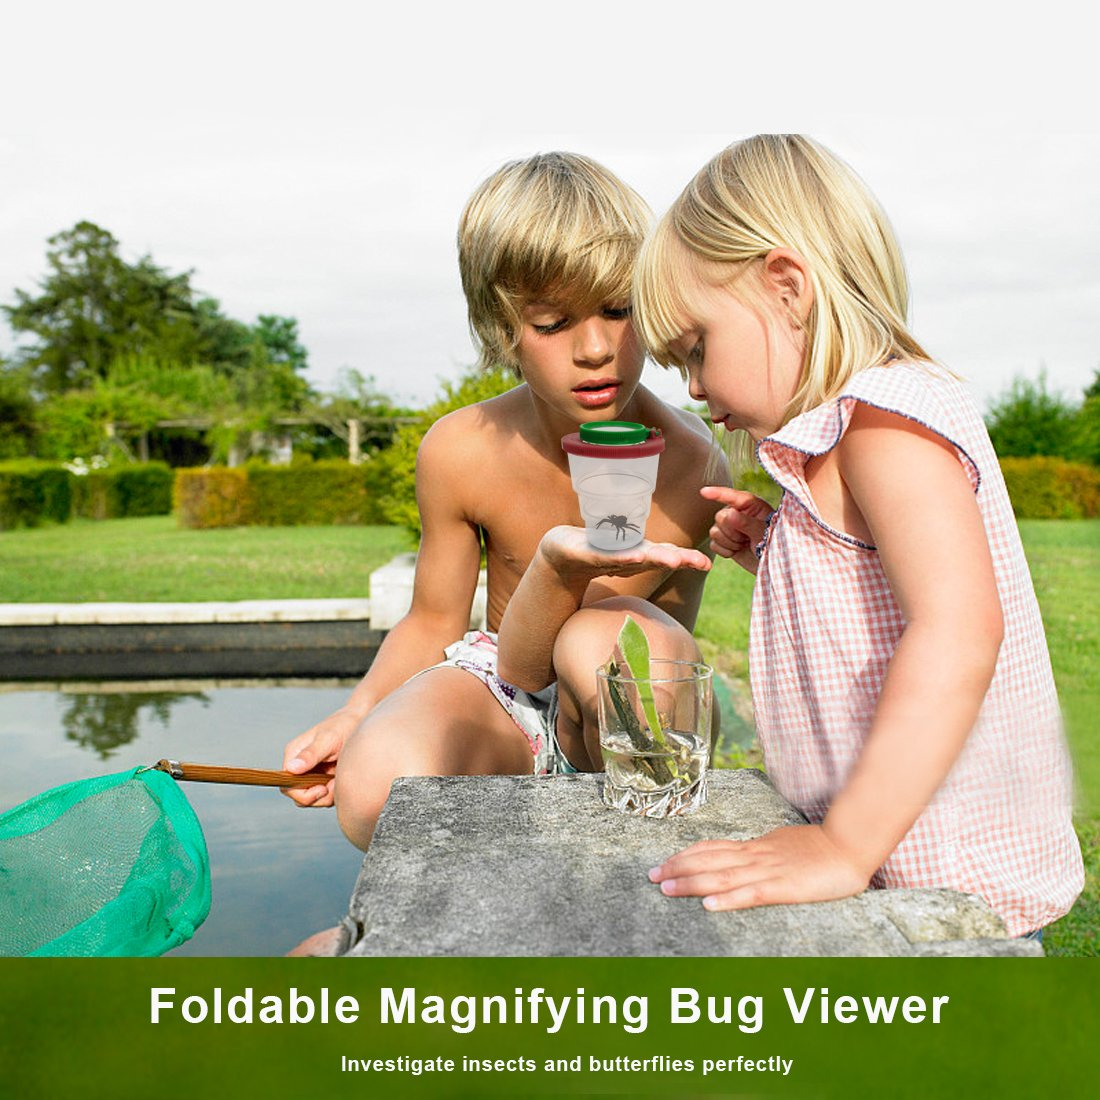 Magnifying Glass Compass Bug Viewer Flashlight incl Binoculars Cleaning Cloth edola 10Pack Outdoor Exploration Toys Educational Gift for Kids Whistle Tweezer Backpack Outdoor Exploration Kit